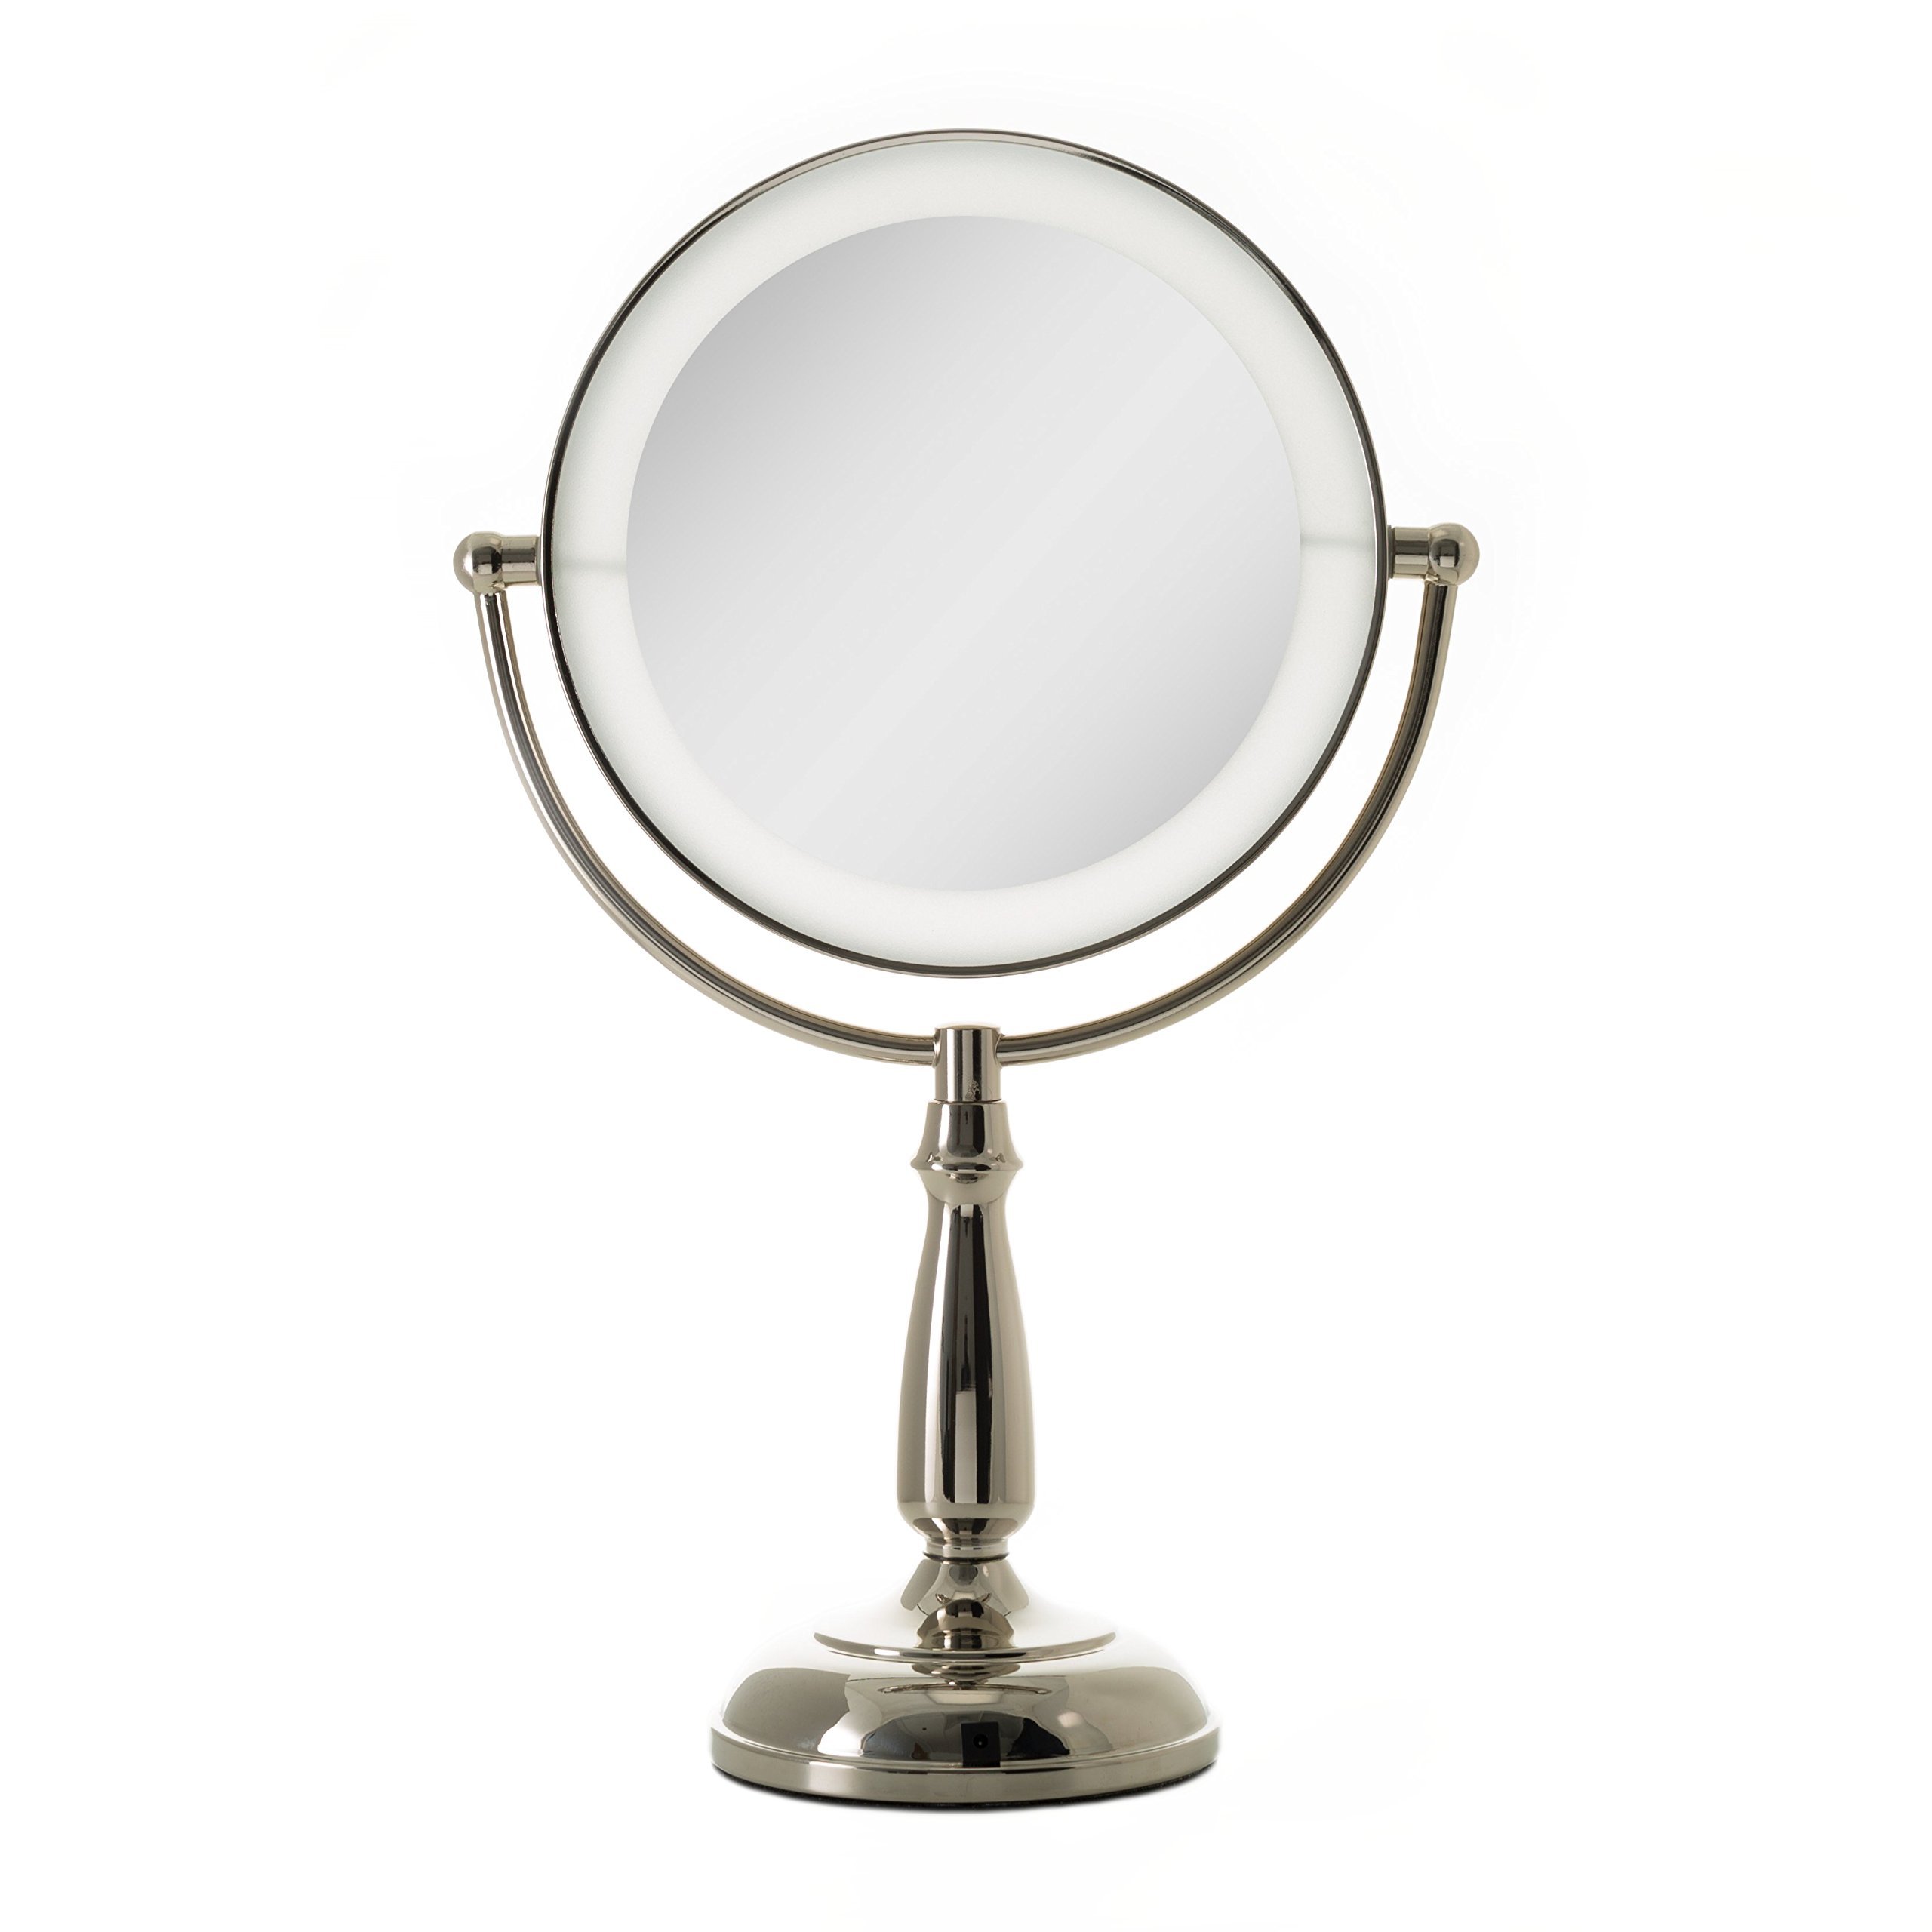 Zadro Dimmable Touch Ultra Bright Dual-Sided LED Lighted Vanity Make Up Mirror with 1X & 10X magnification in Polished Nickel Finish.